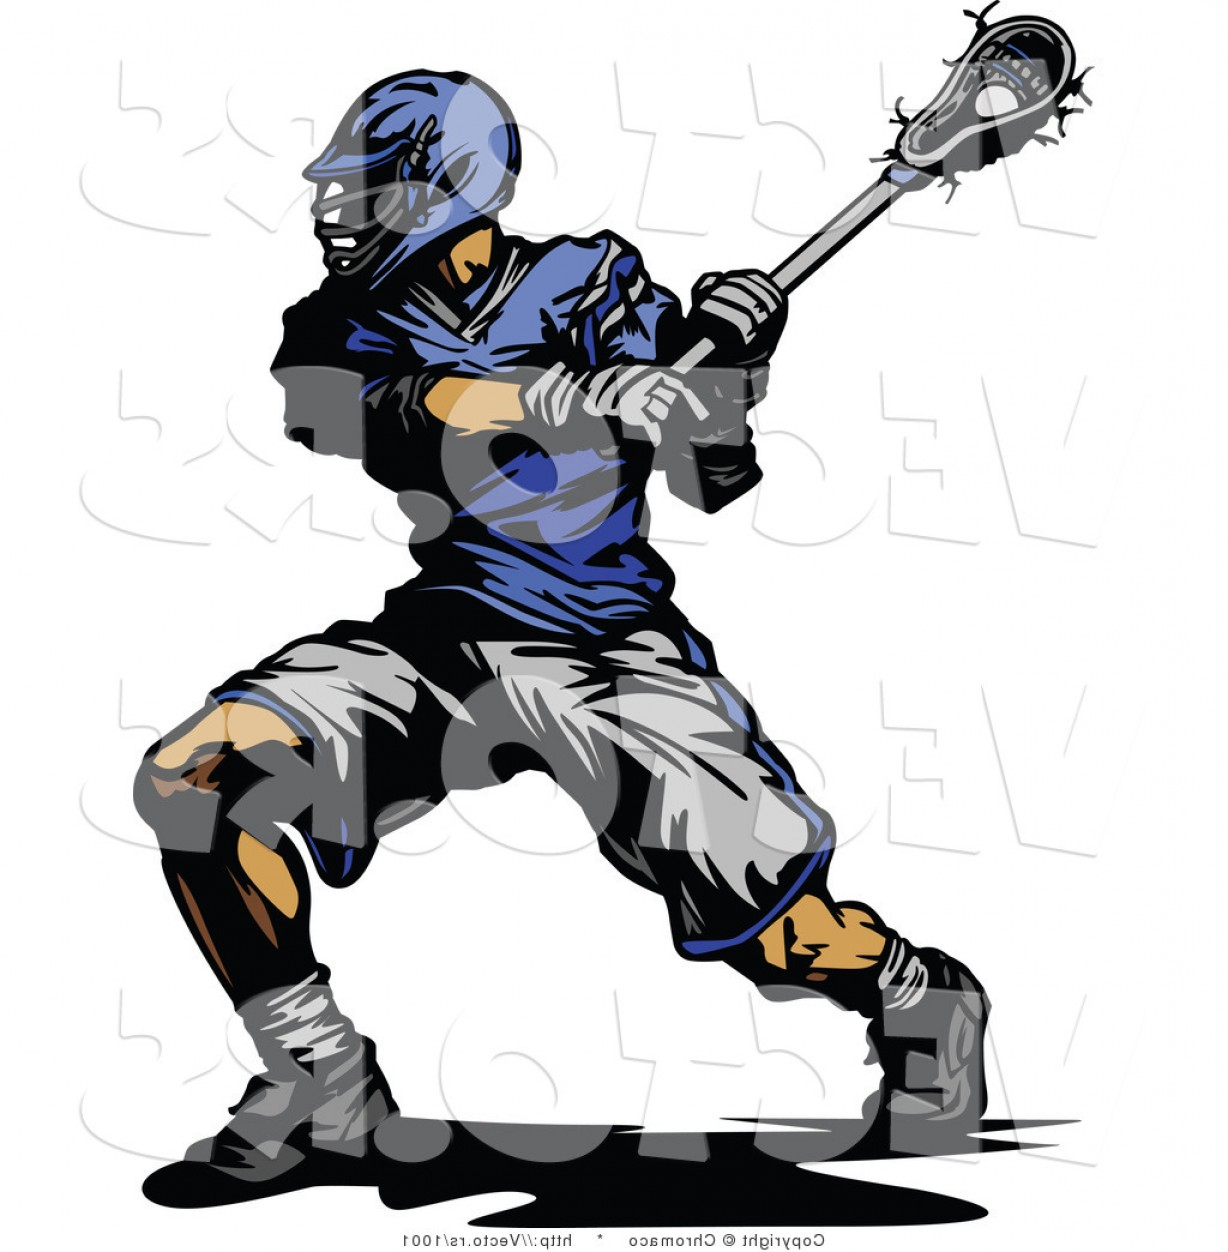 Lacrosse Stick Vector: Vector Of A Competitive Lacrosse Player Swinging Stick By Chromaco